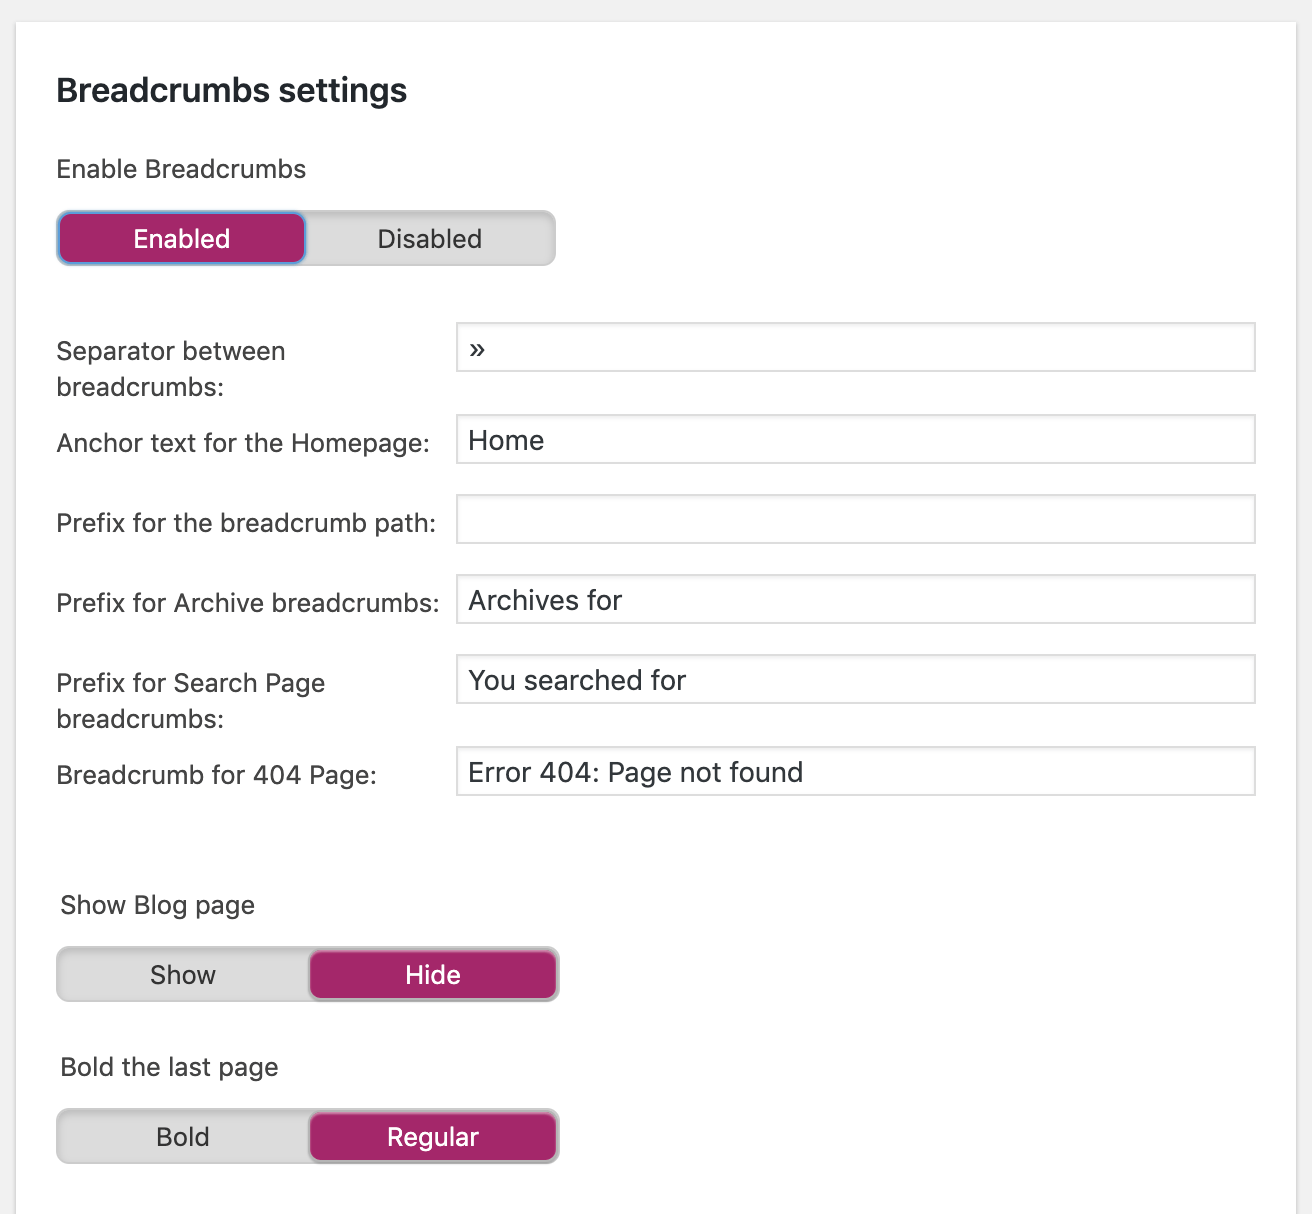 Breadcrumb Settings in Yoast SEO